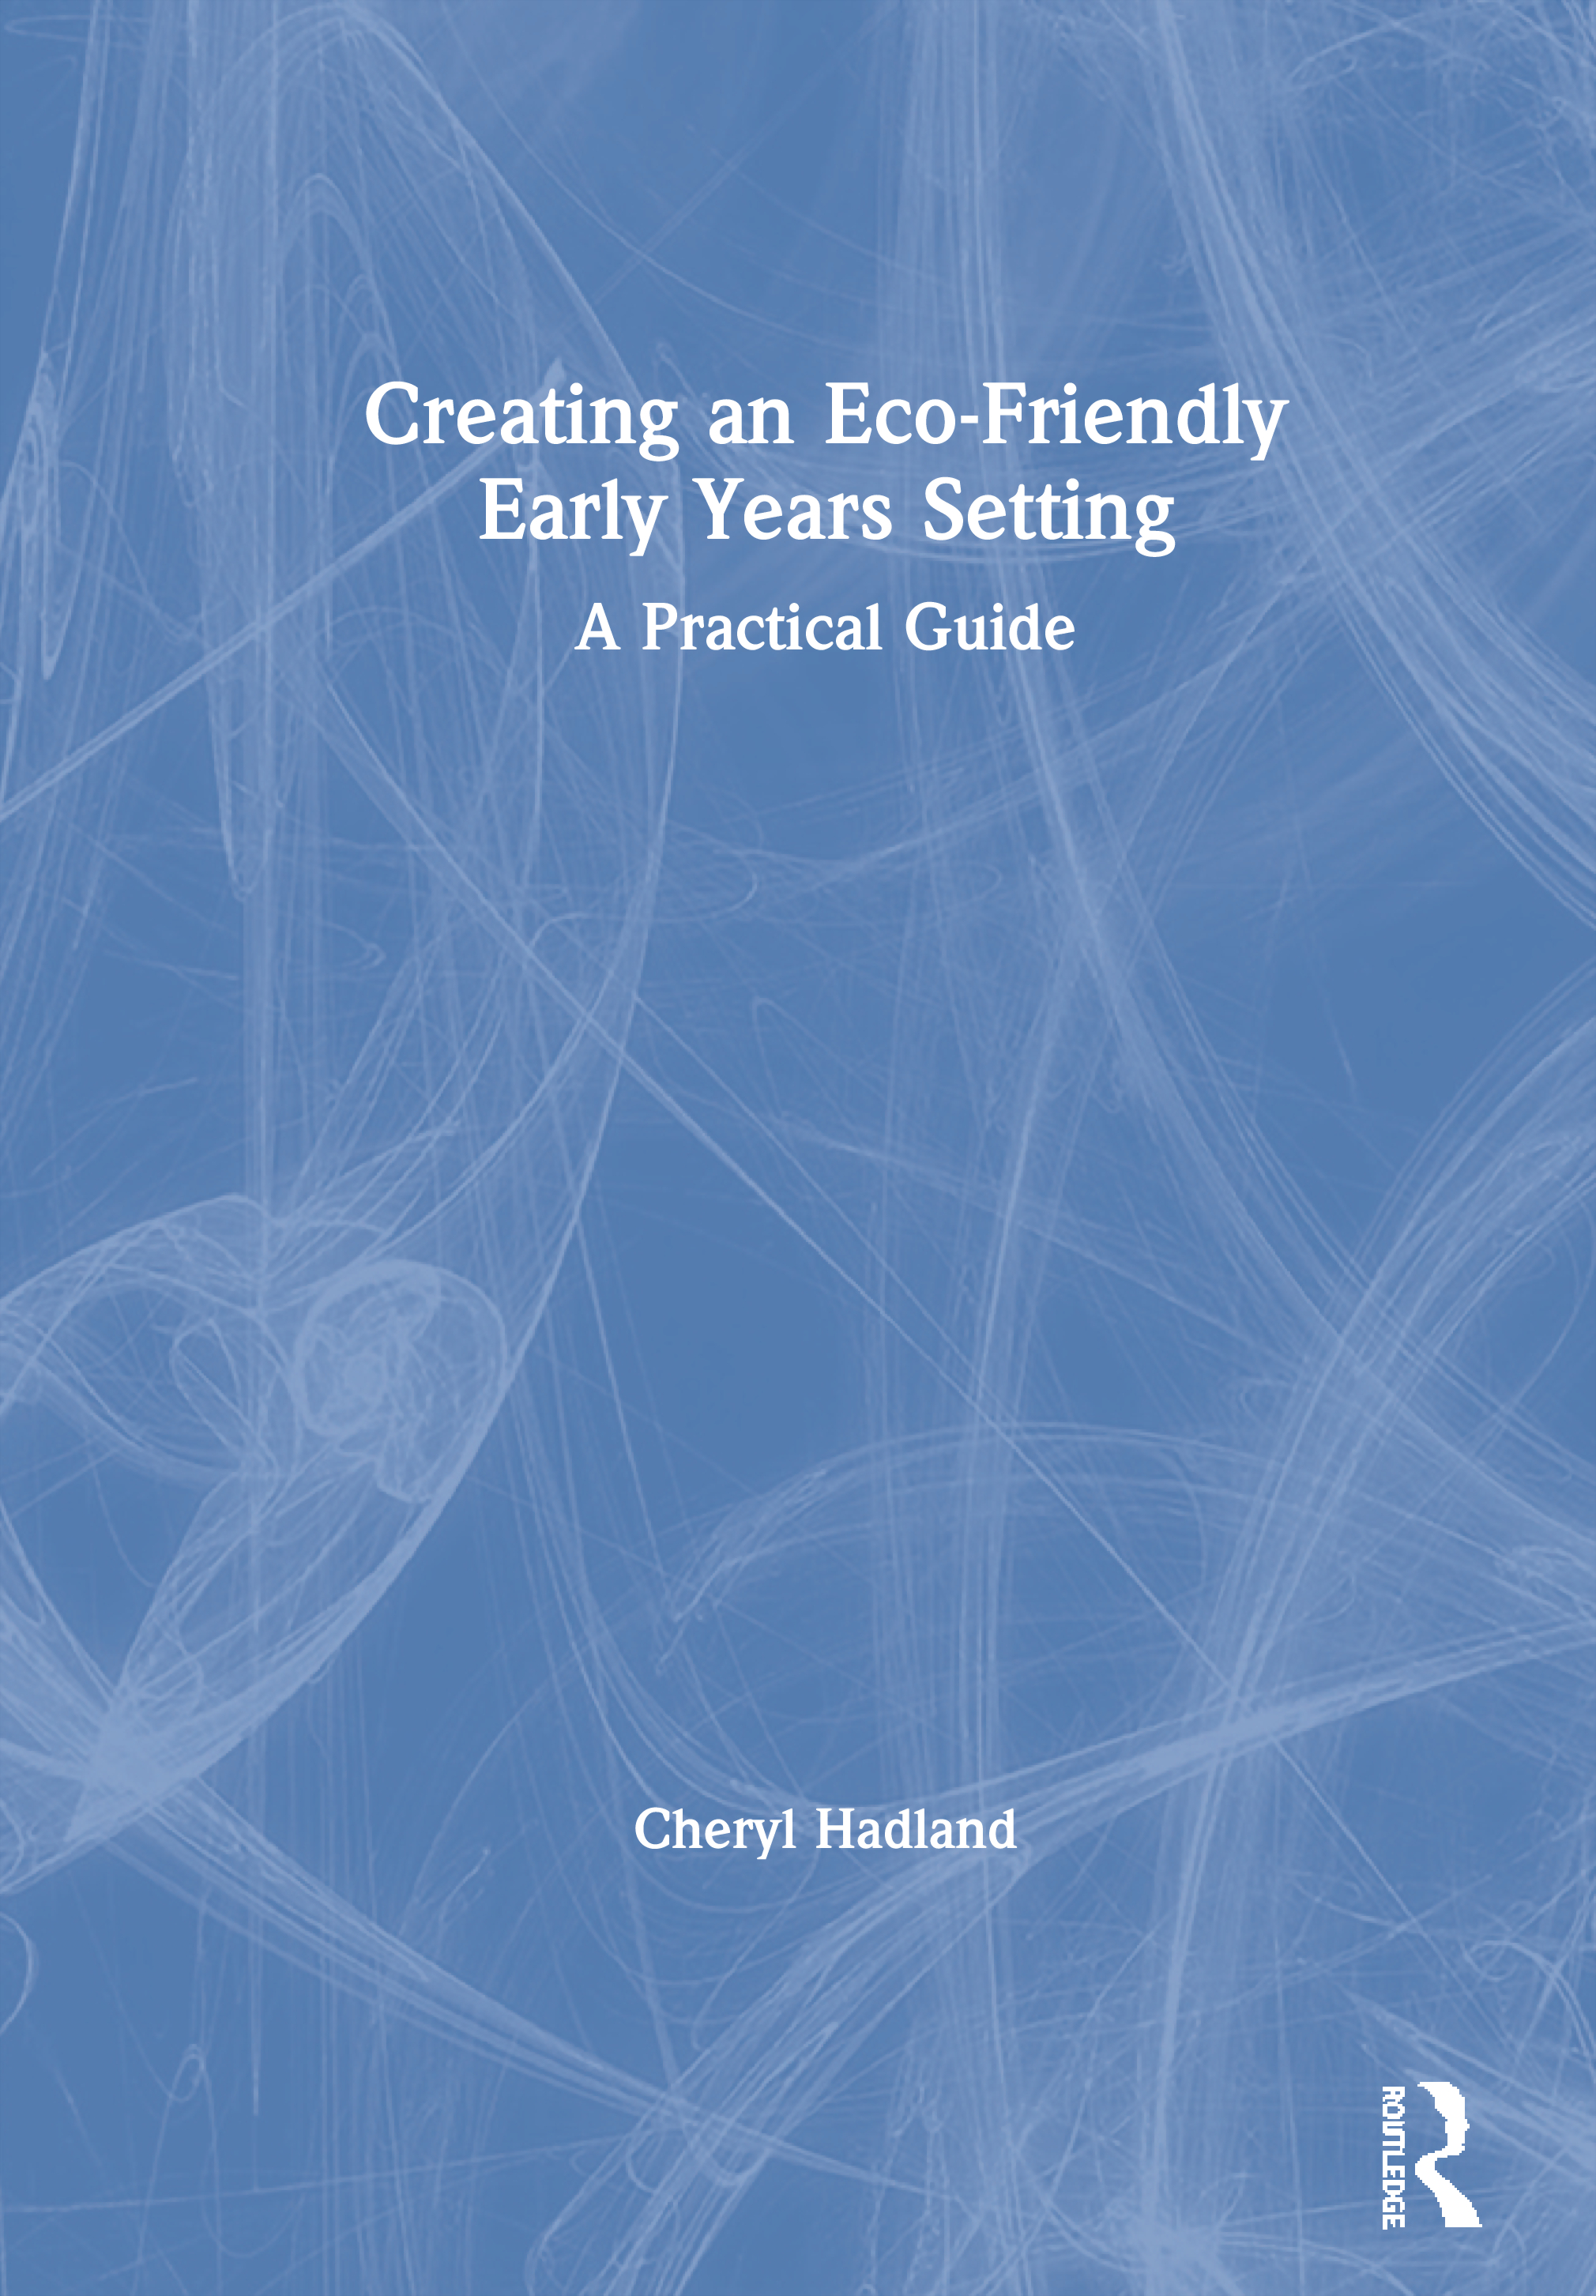 Creating an Eco-Friendly Early Years Setting: A Practical Guide book cover